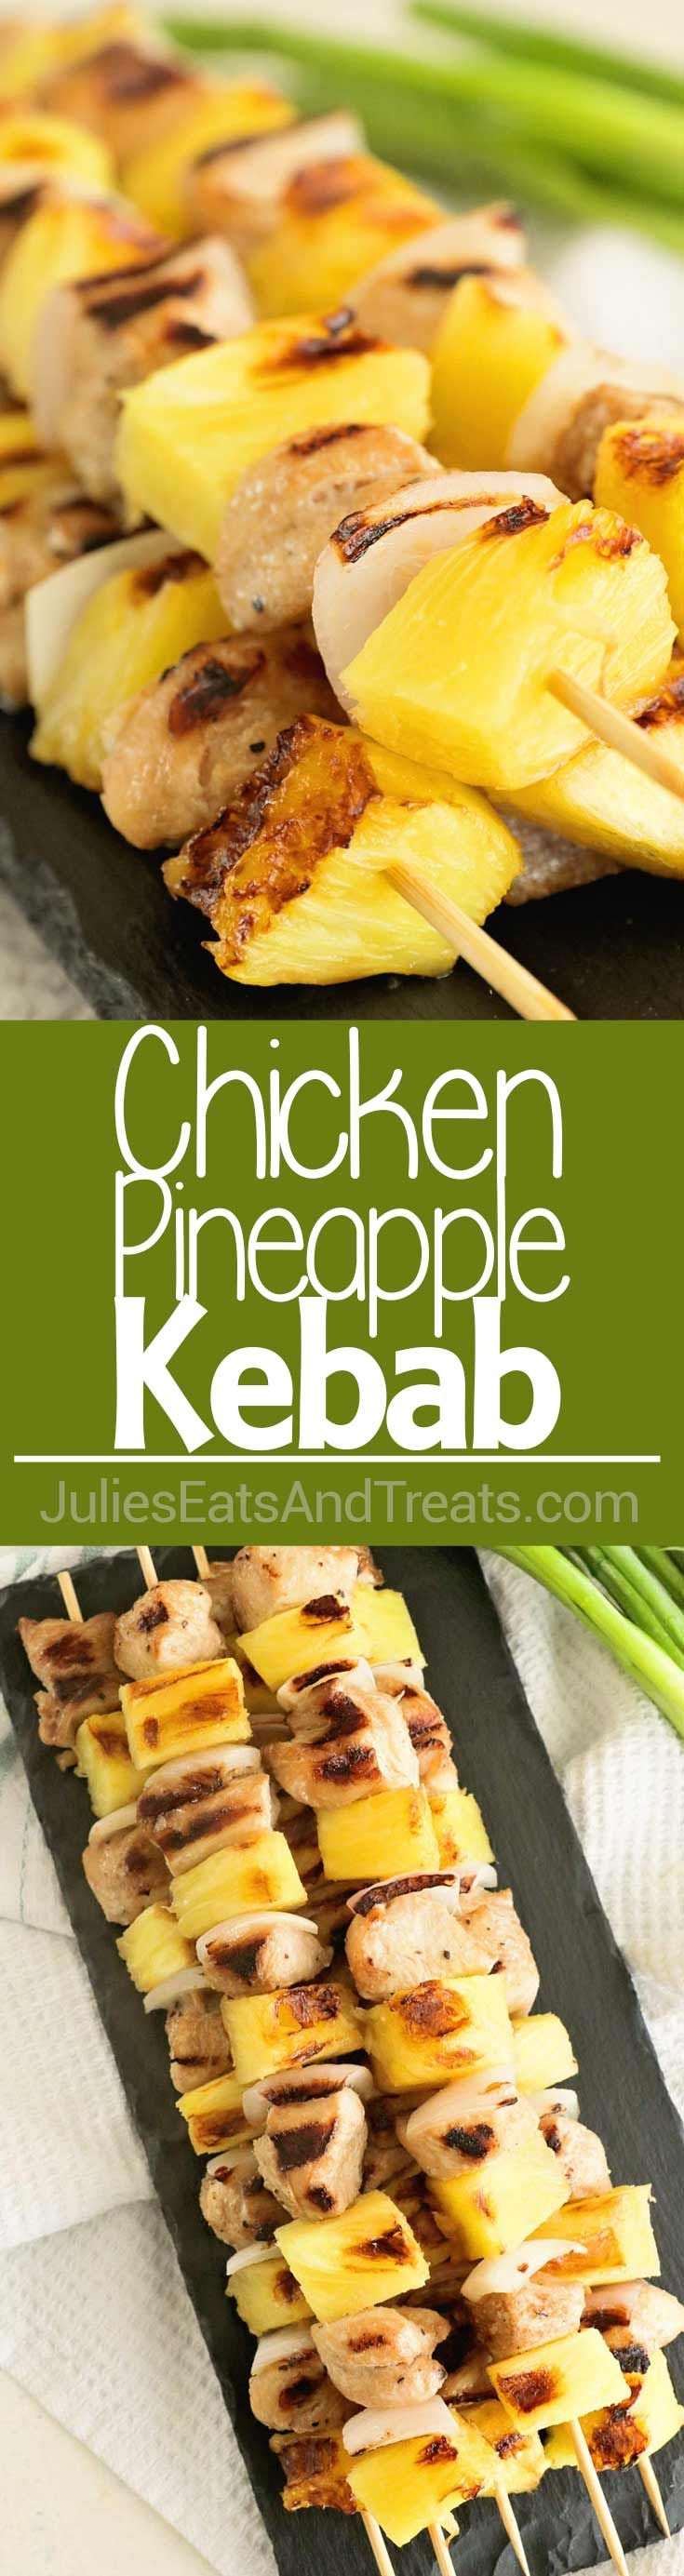 Chicken Pineapple Kebabs ~ Quick and Easy Marinated Skewrs that are the Perfect Combination of Sweet and Tangy! via @julieseats